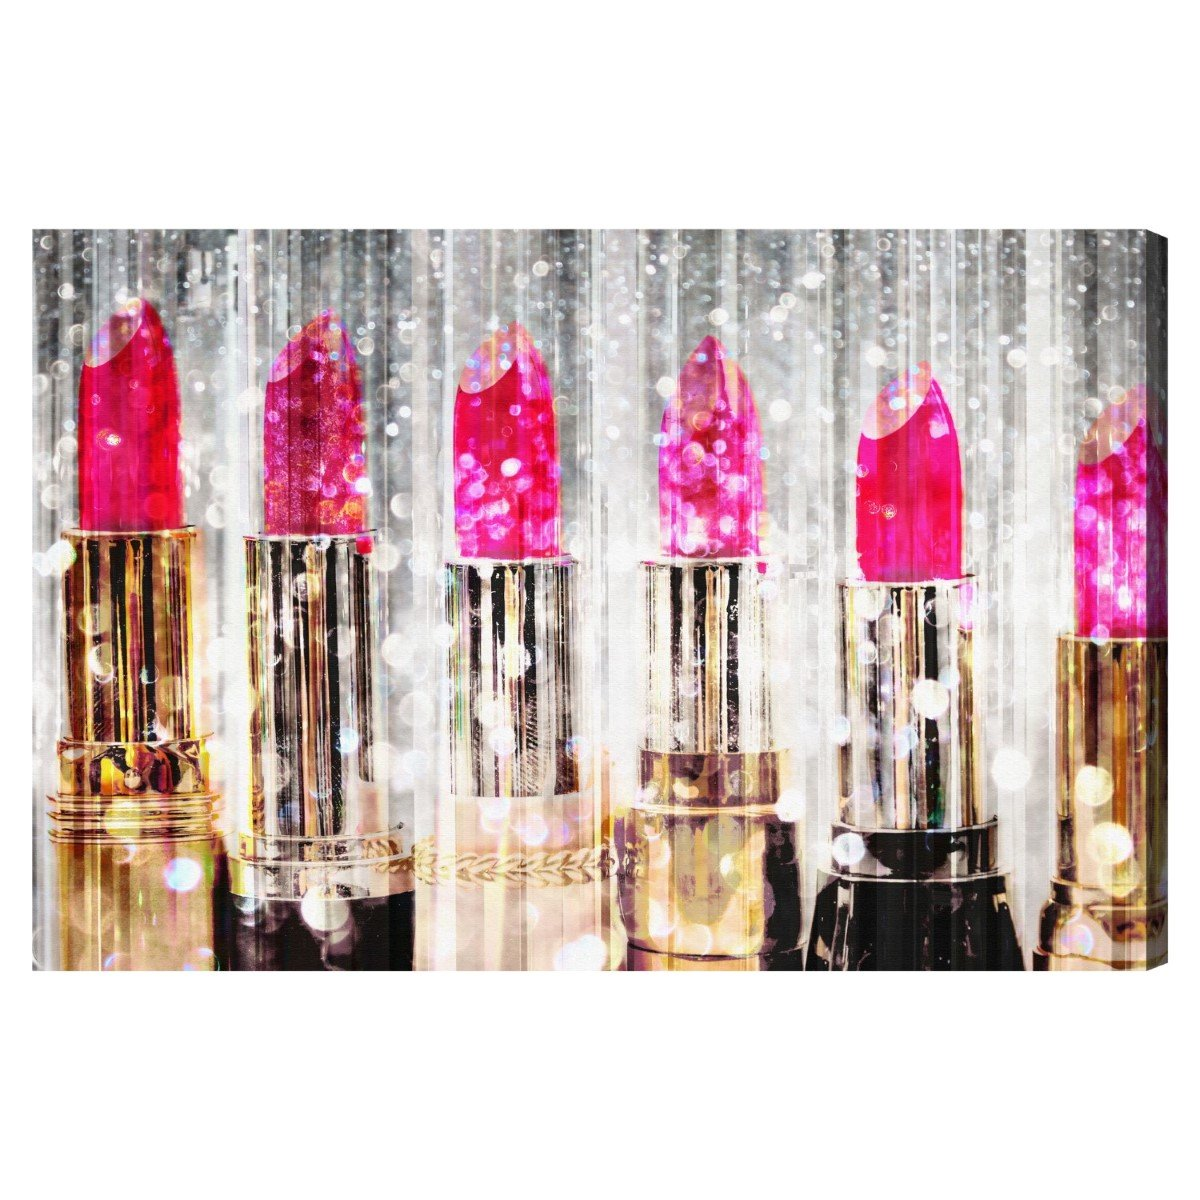 Lipstick Collection' Contemporary Canvas Wall Art Print for Home Decor and Office. The Fashion Wall Decor Collection by The Oliver Gal Artist Co. Gallery Wrapped and Ready to Hang. 36x24 inch by The Oliver Gal Artist Co.